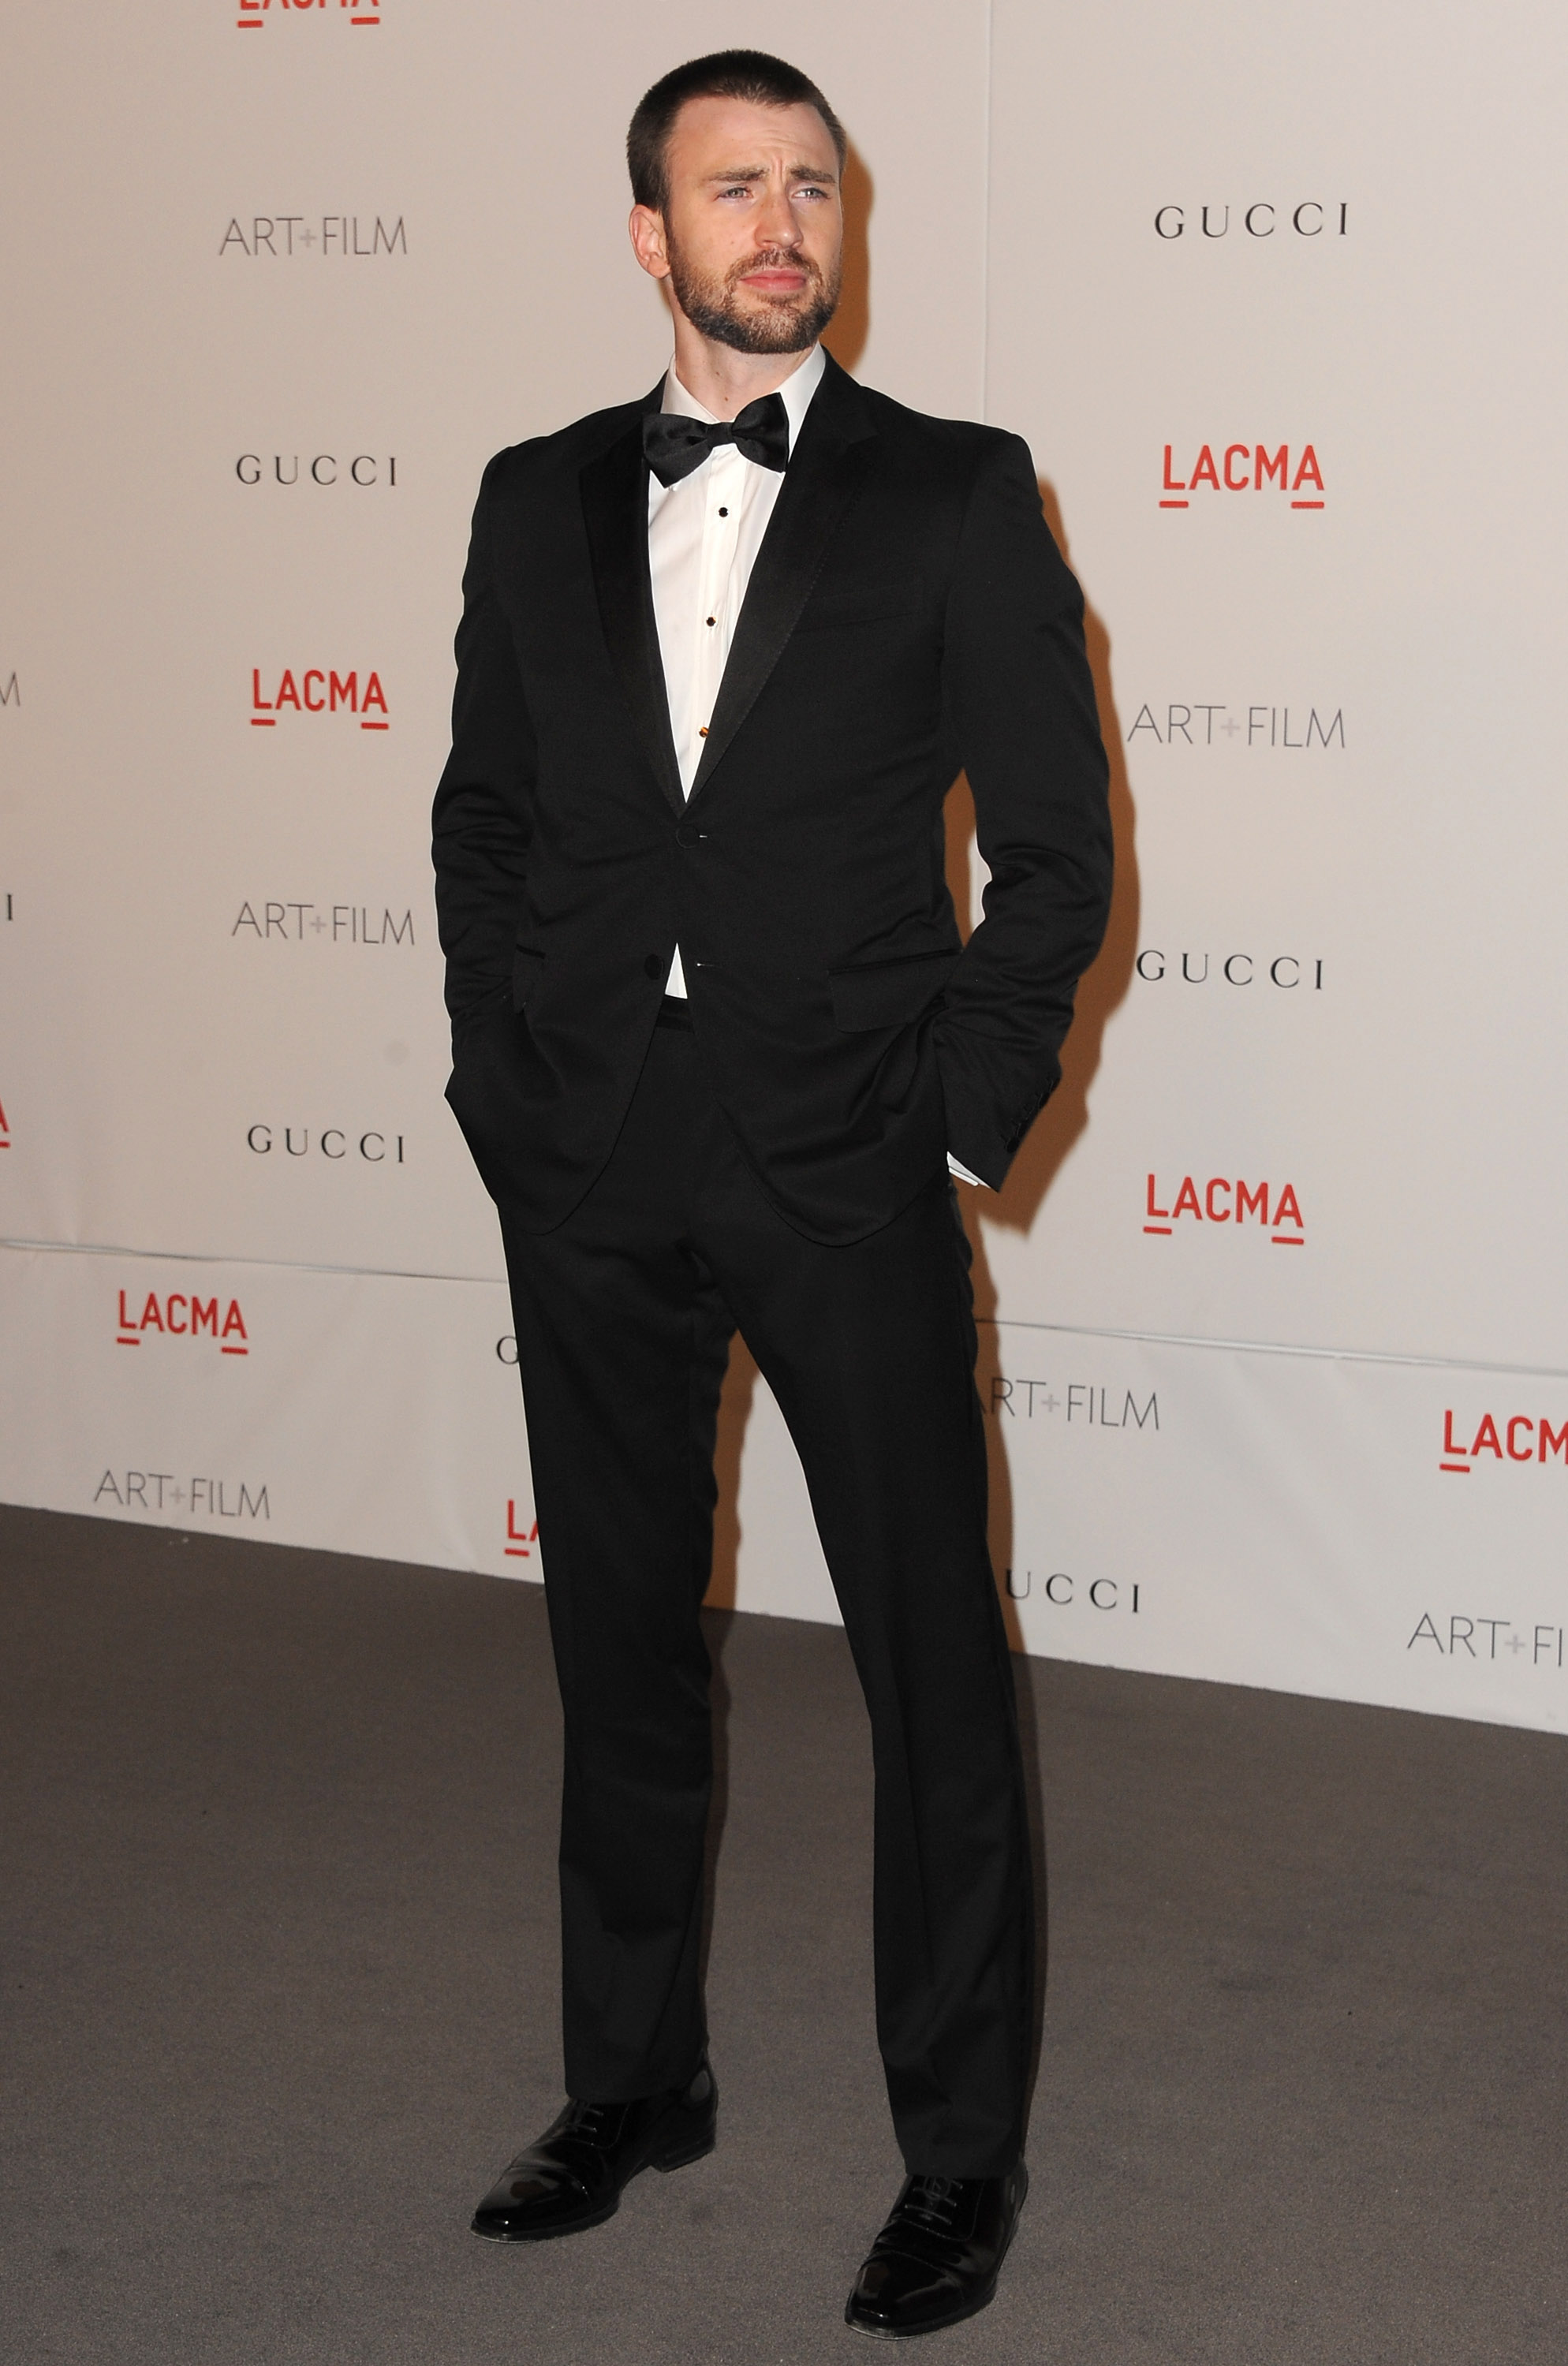 Chris Evans at a Gucci-sponsored LACMA bash.